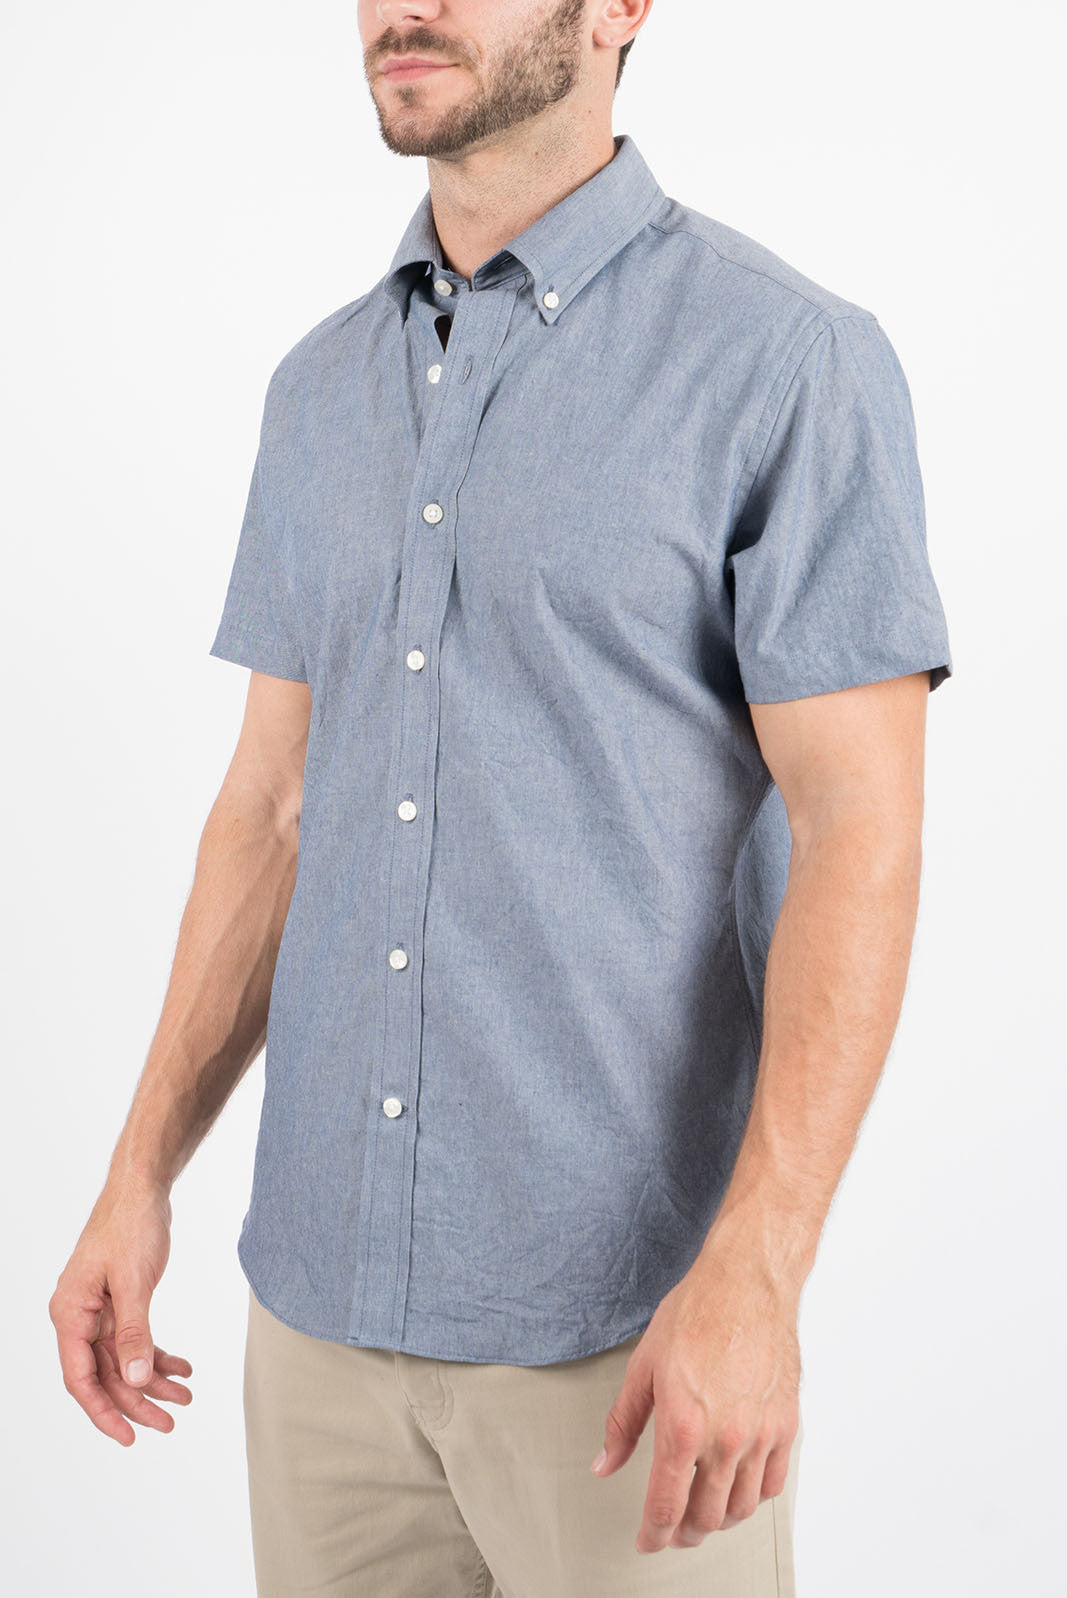 Blue Chambray: Button-Down Collar, Short Sleeve